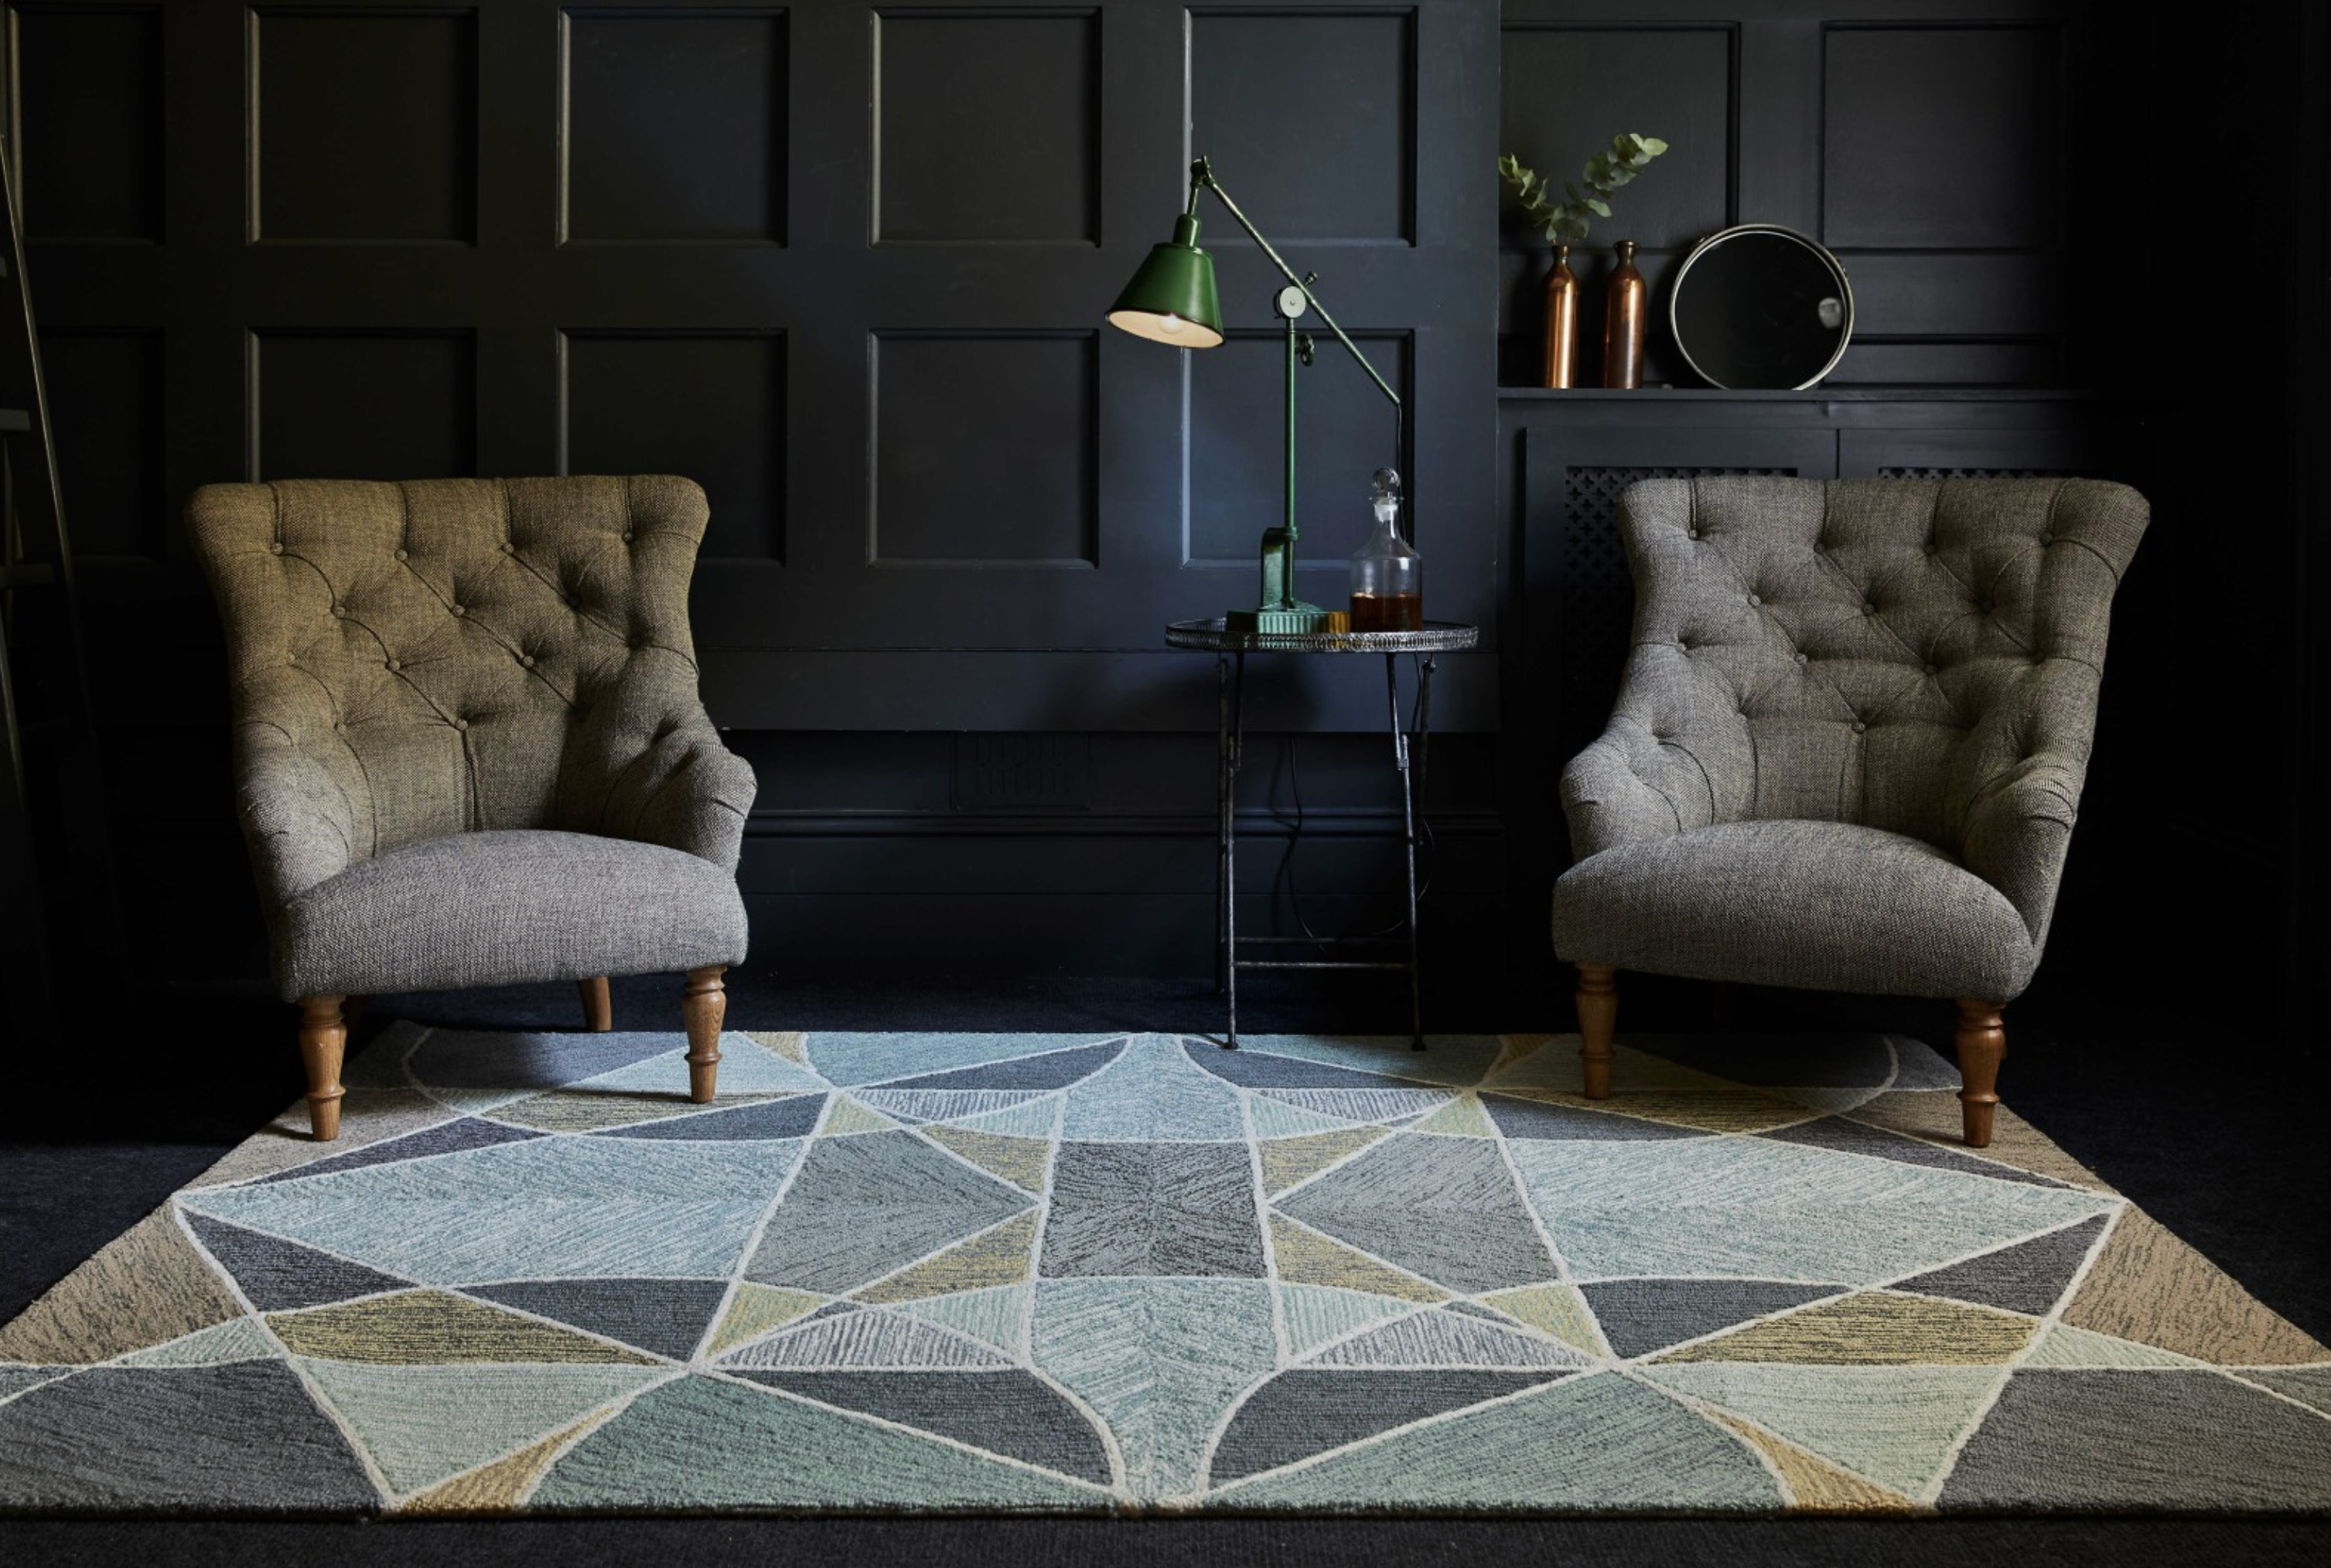 Geoge wool rug, Goodweave certified, by Lindsey Lang